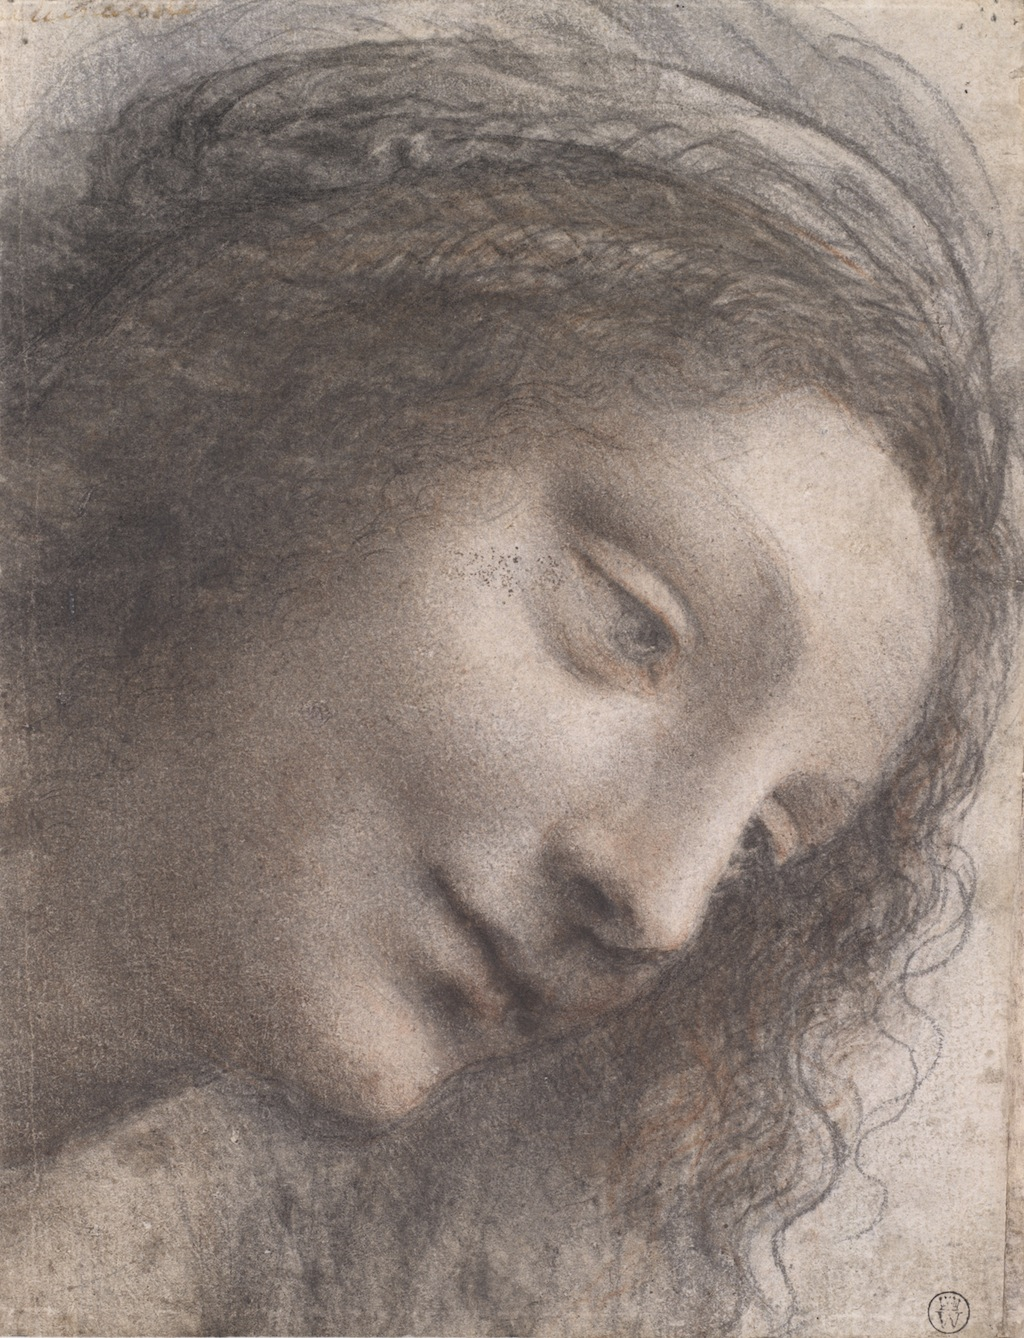 Leonardo da Vinci, The Head of the Virgin in Three-Quarter View Facing Right